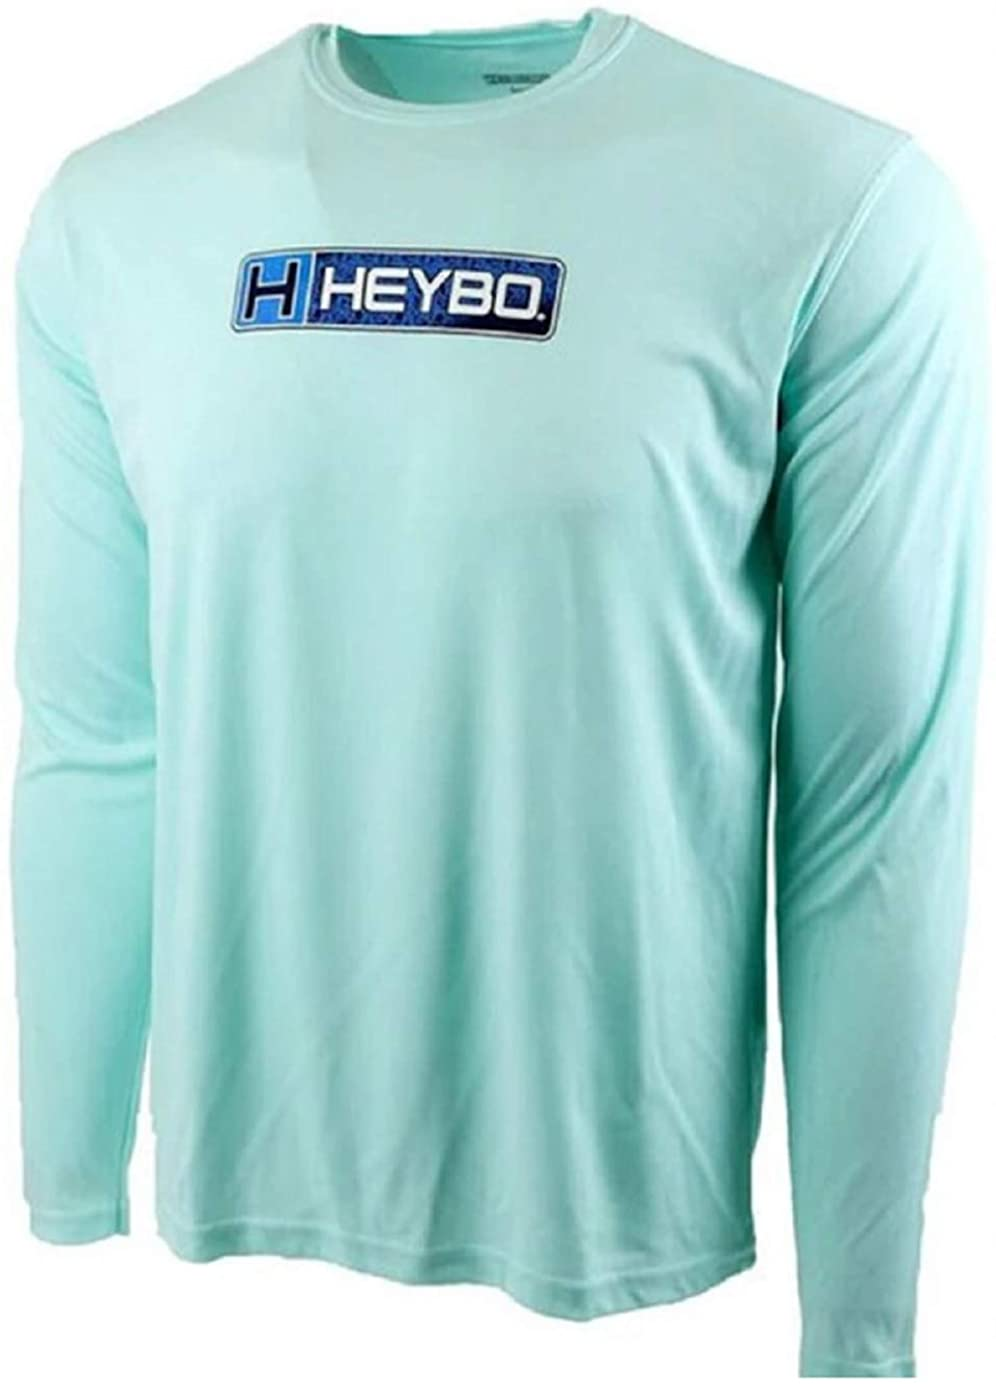 Heybo Mens Blue Tunaflage, Pale Yellow